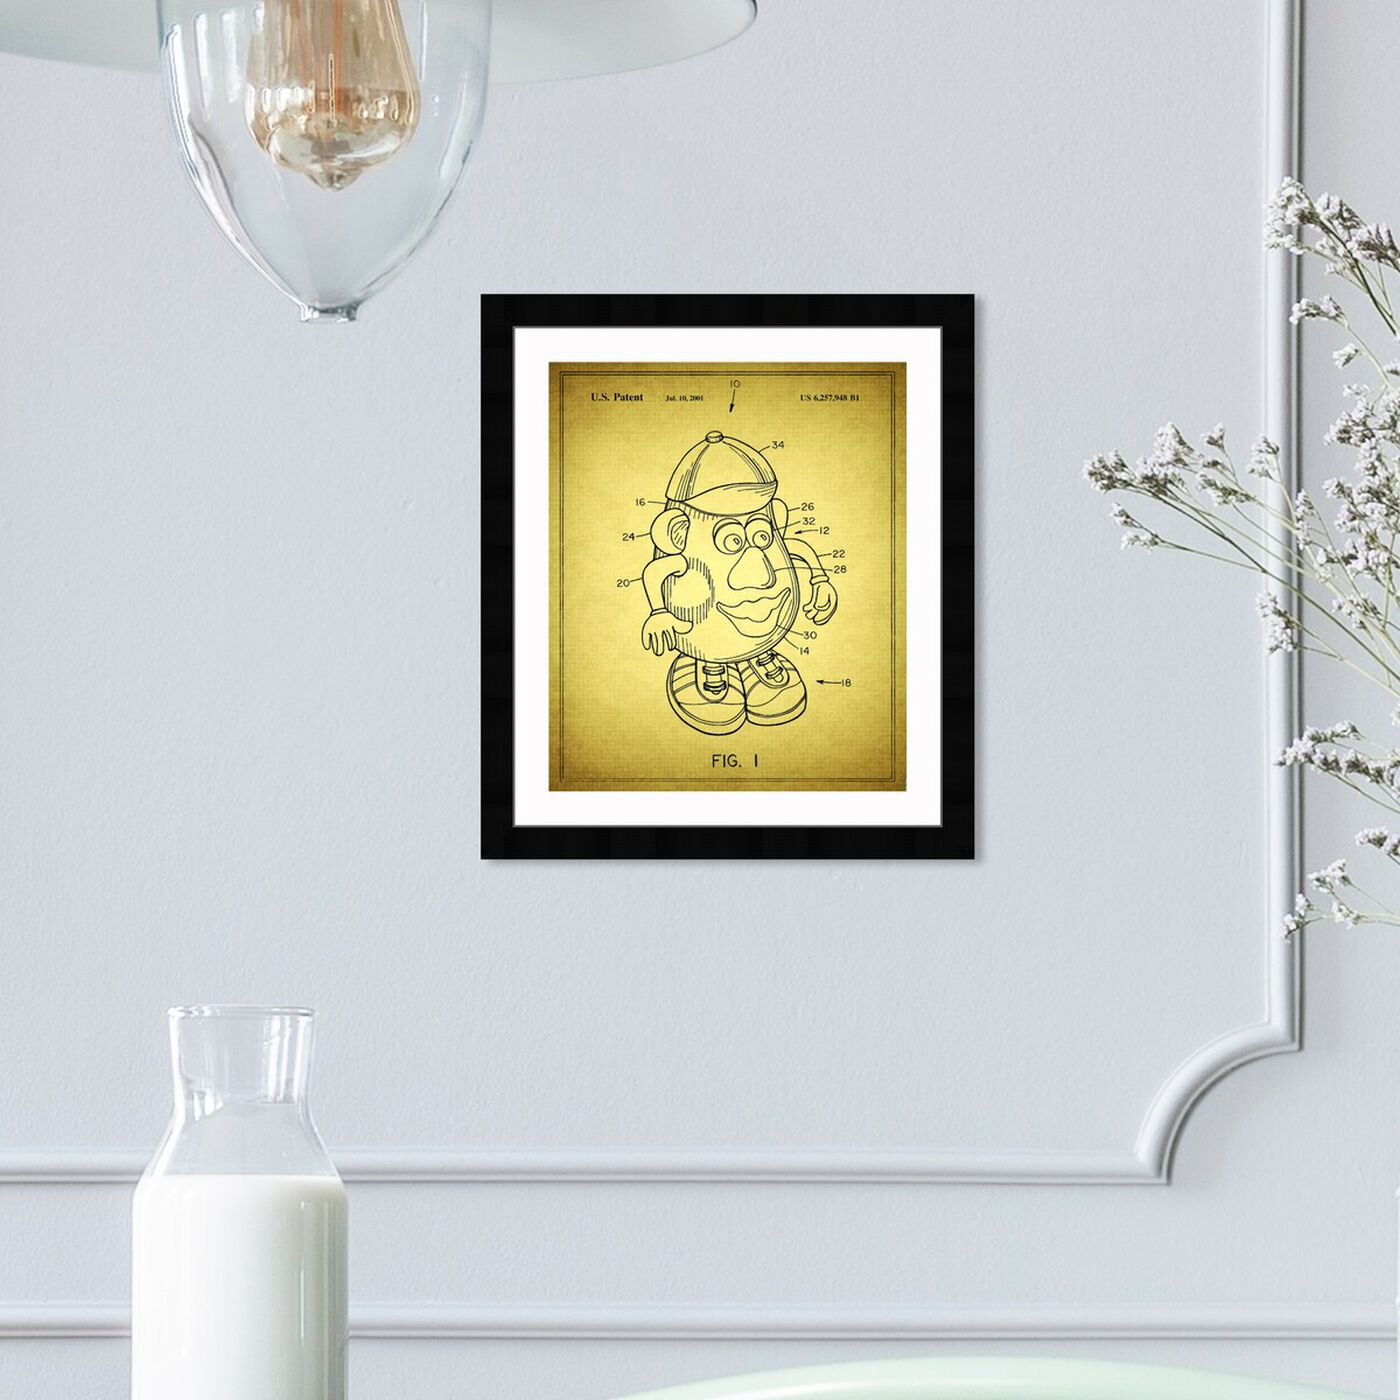 Hanging view of Mr Potato, 2001 featuring symbols and objects and toys art.